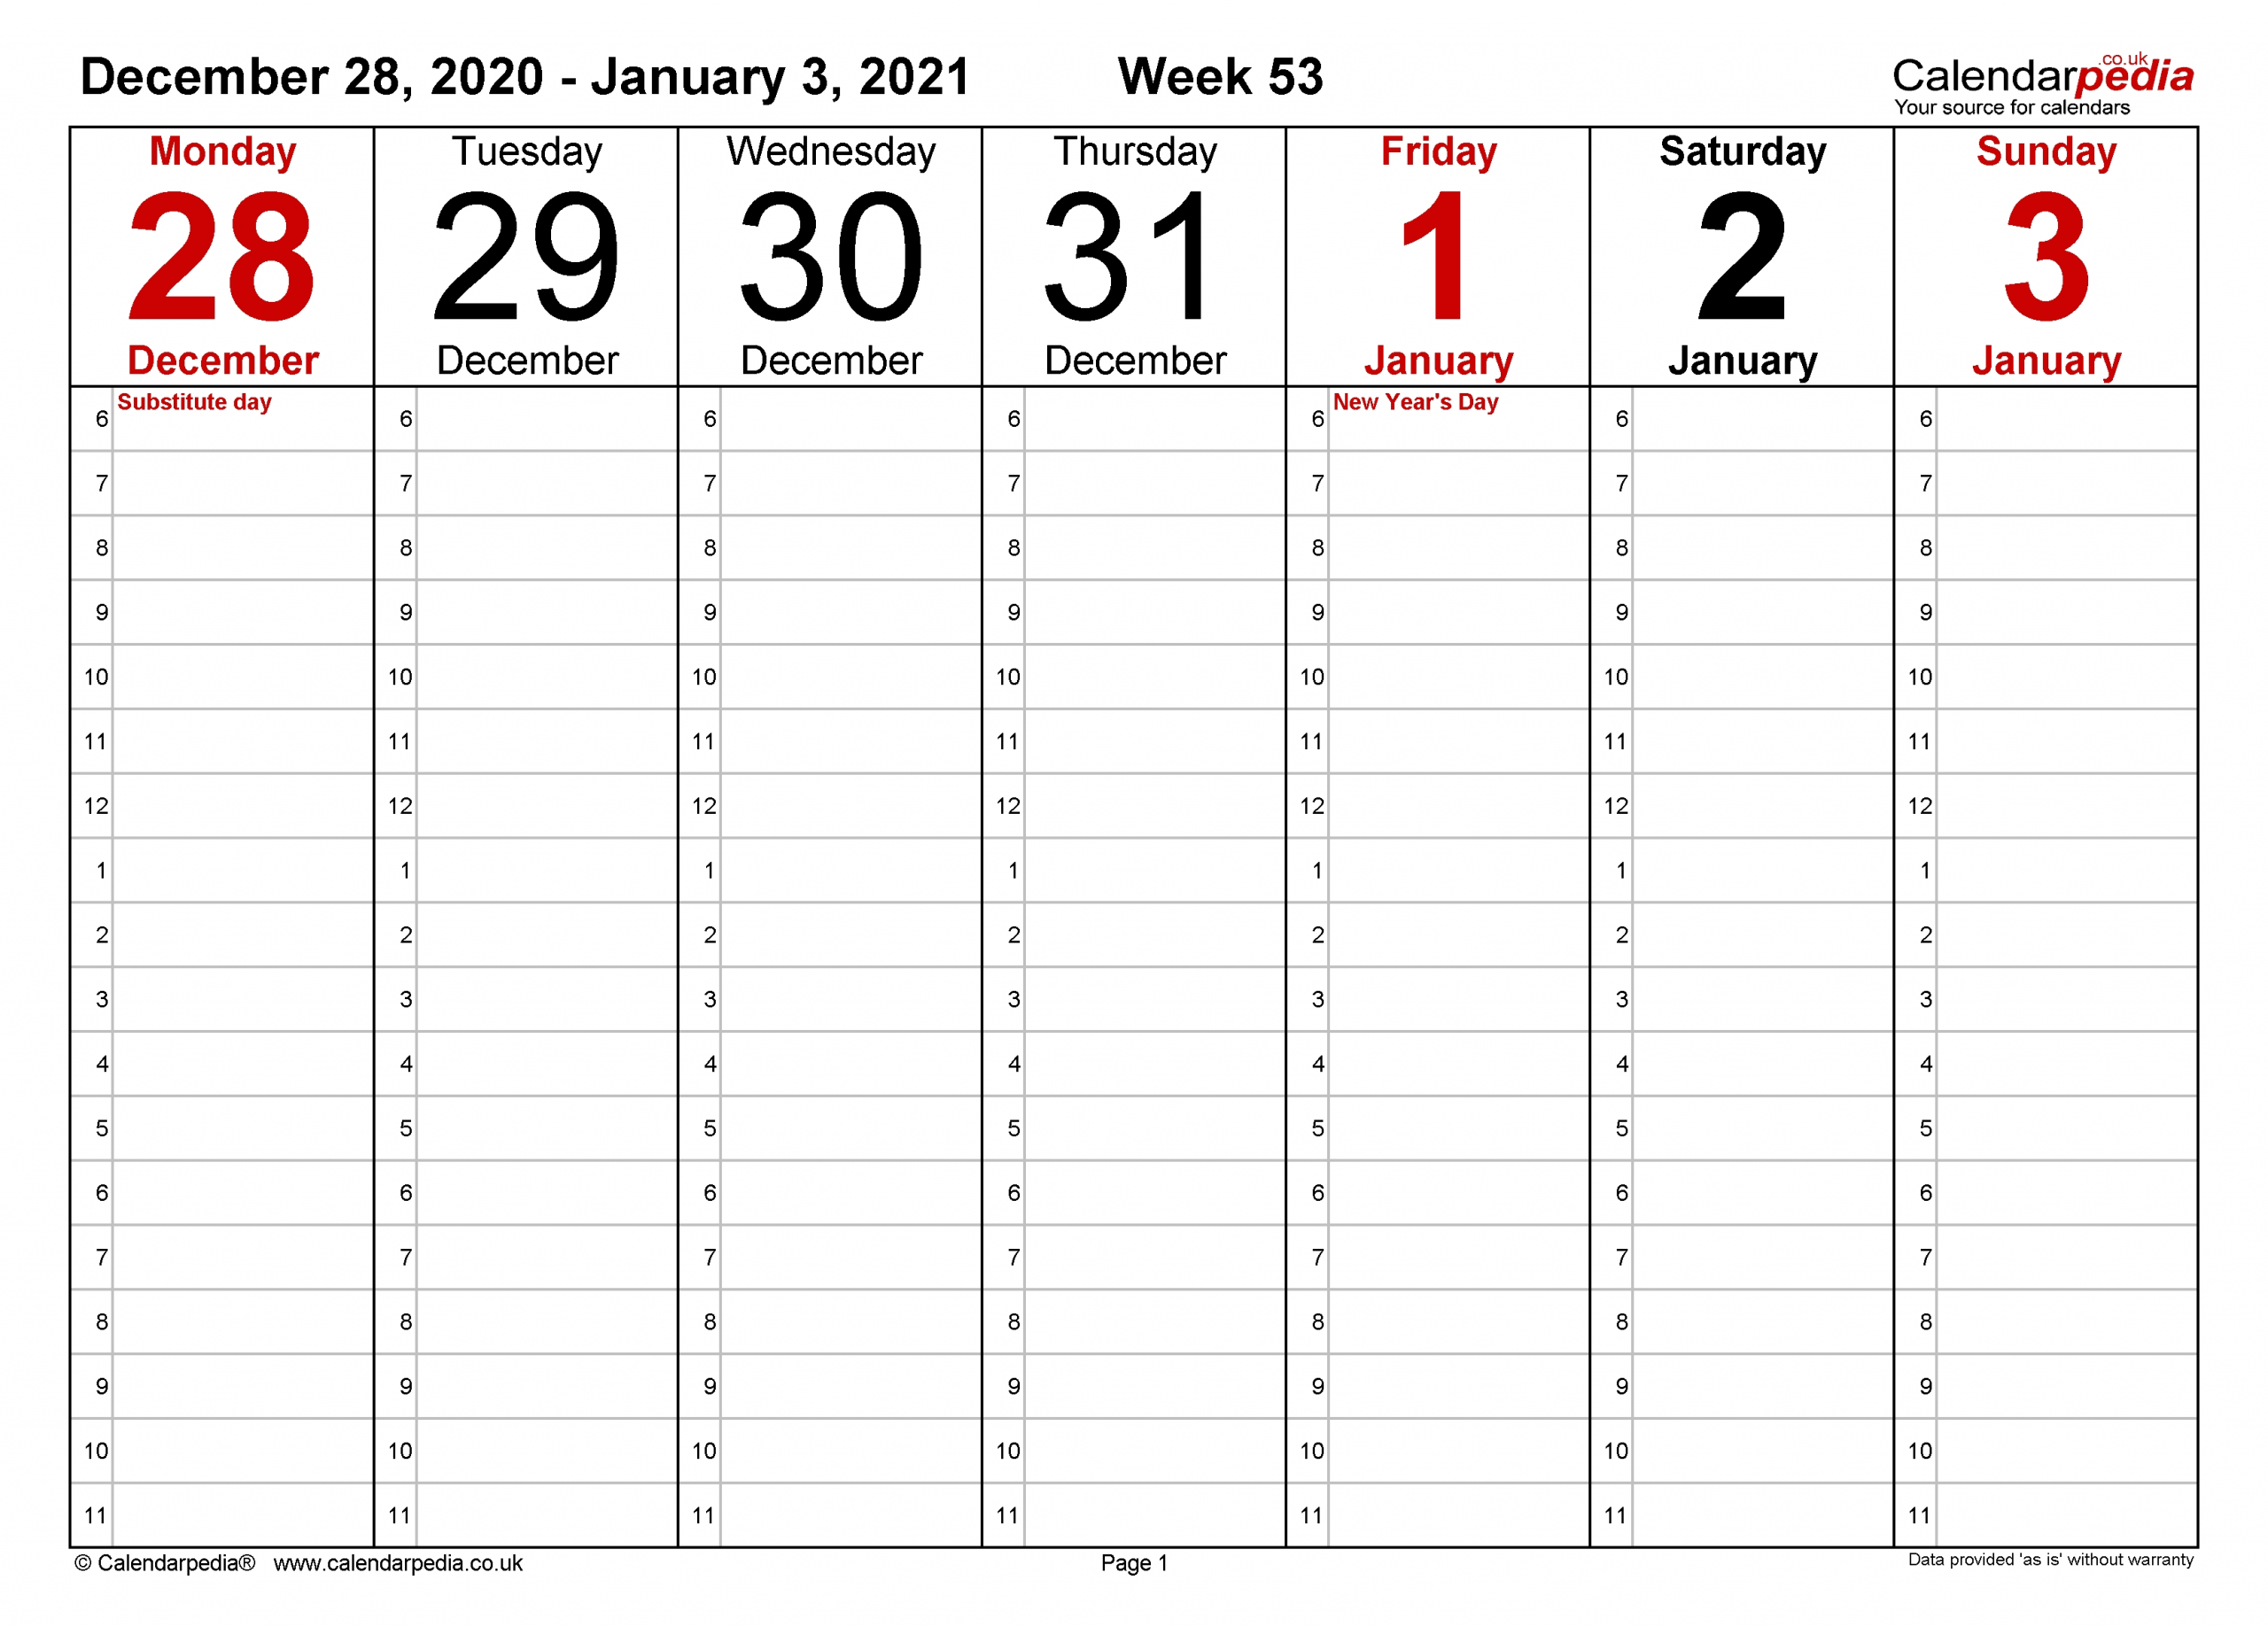 Weekly Calendar 2021 Uk - Free Printable Templates For Word-Print Free 2021 Calendar Without Downloading